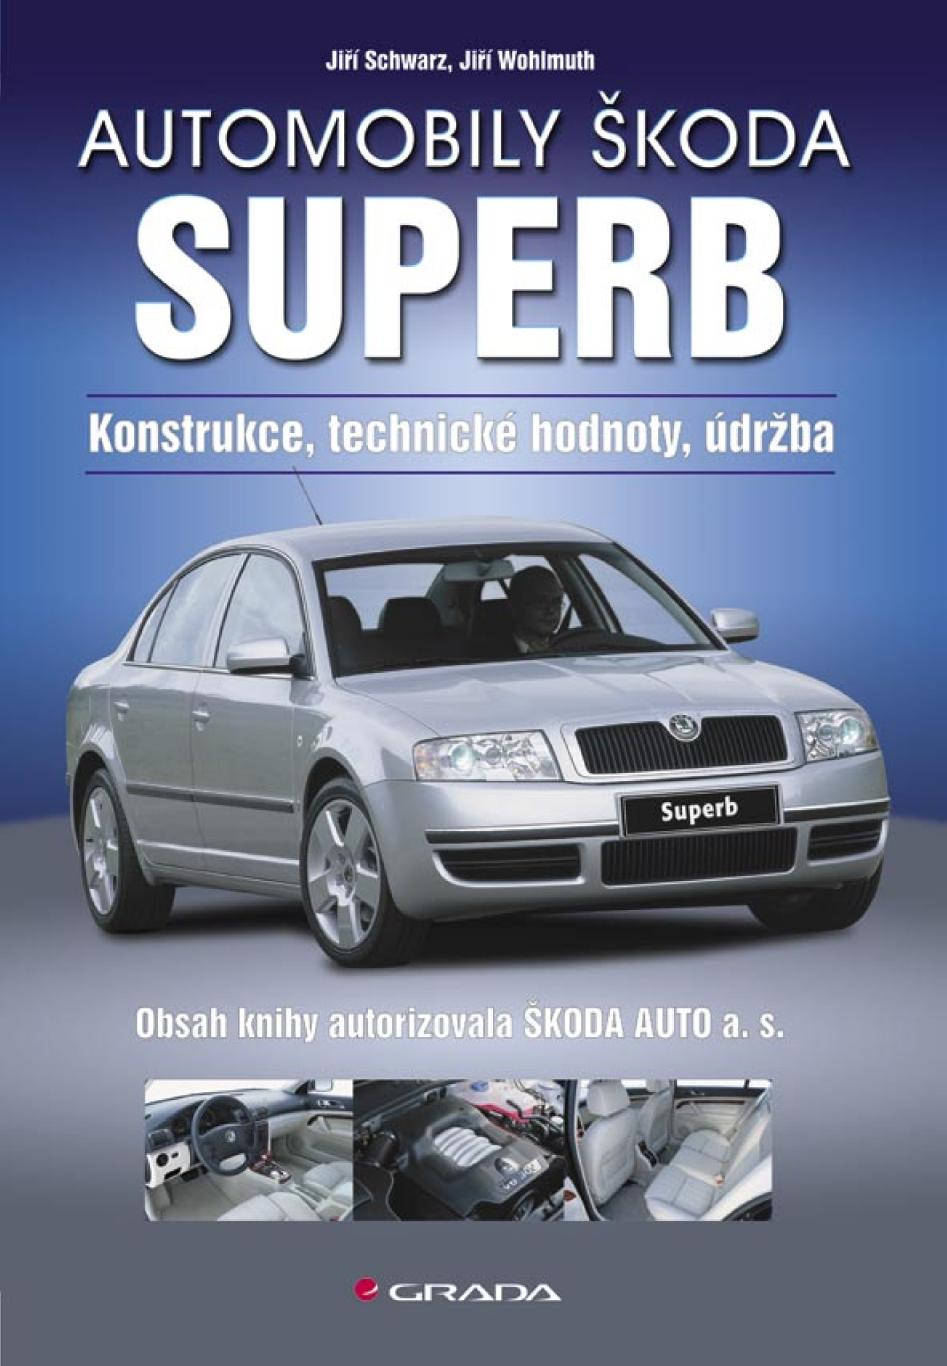 Automobily Škoda Superb